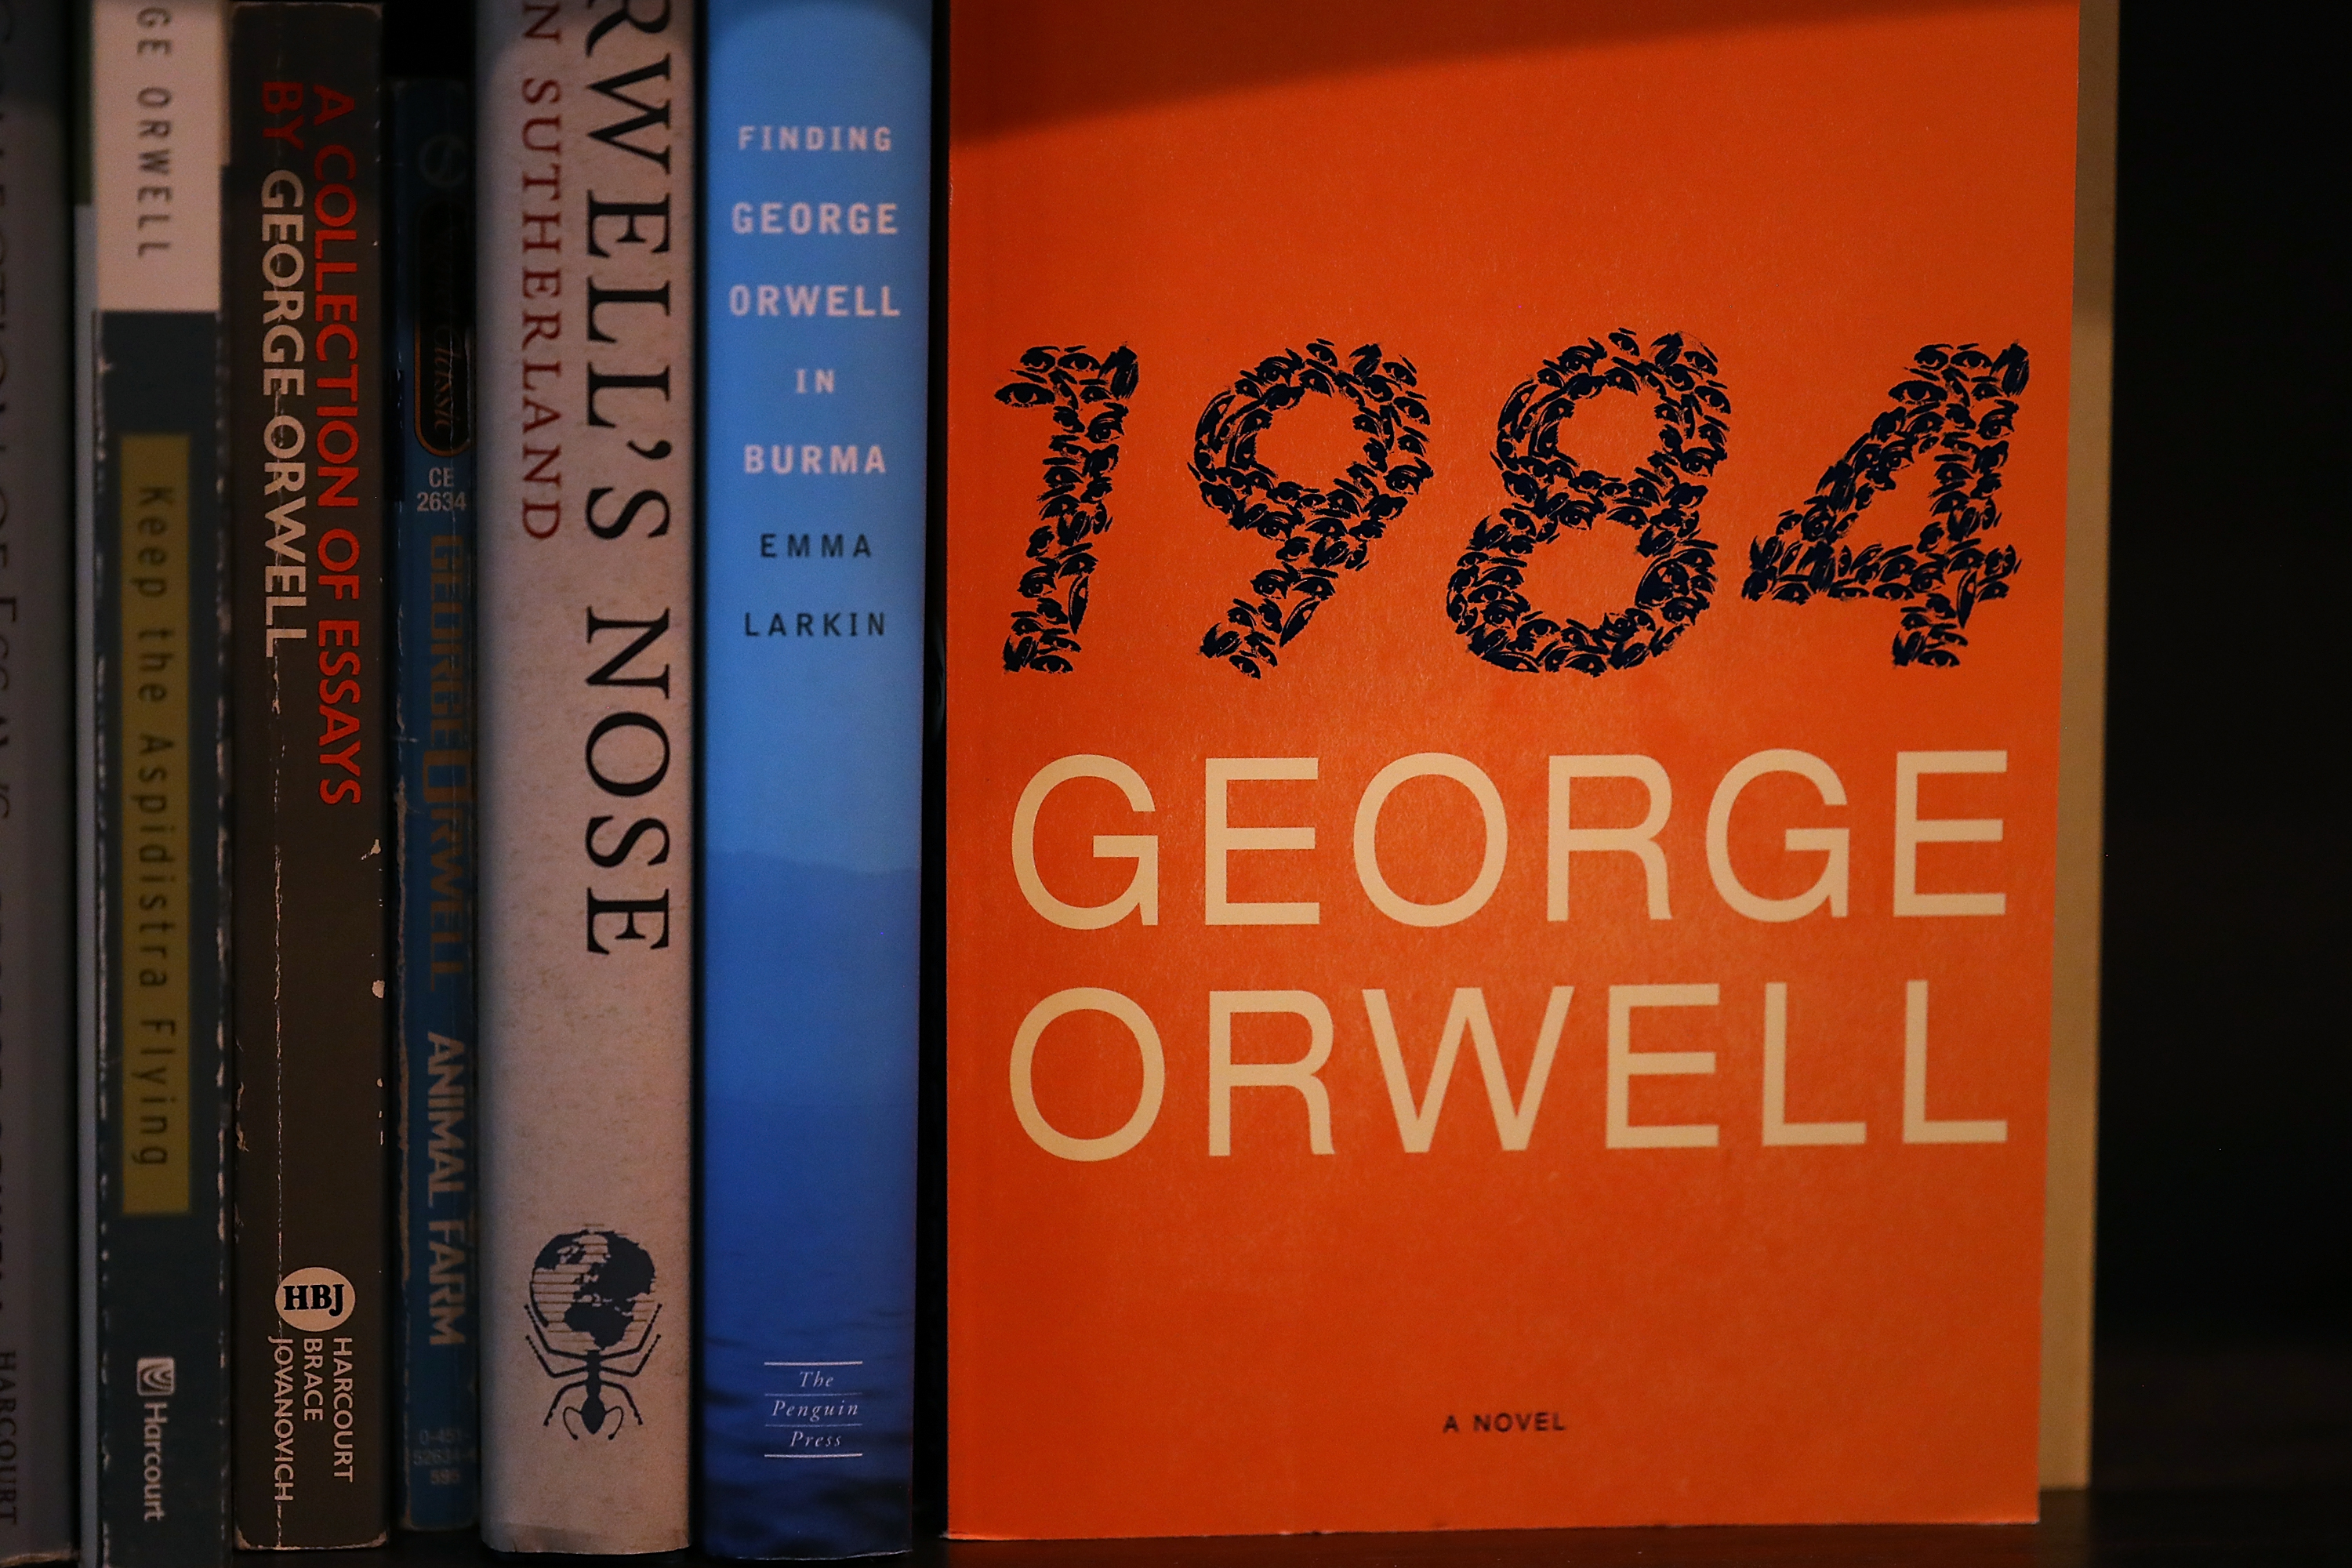 george orwell essay essay on top custom essay sites best  written by george orwell is no on amazon s best seller 1984 written by george orwell